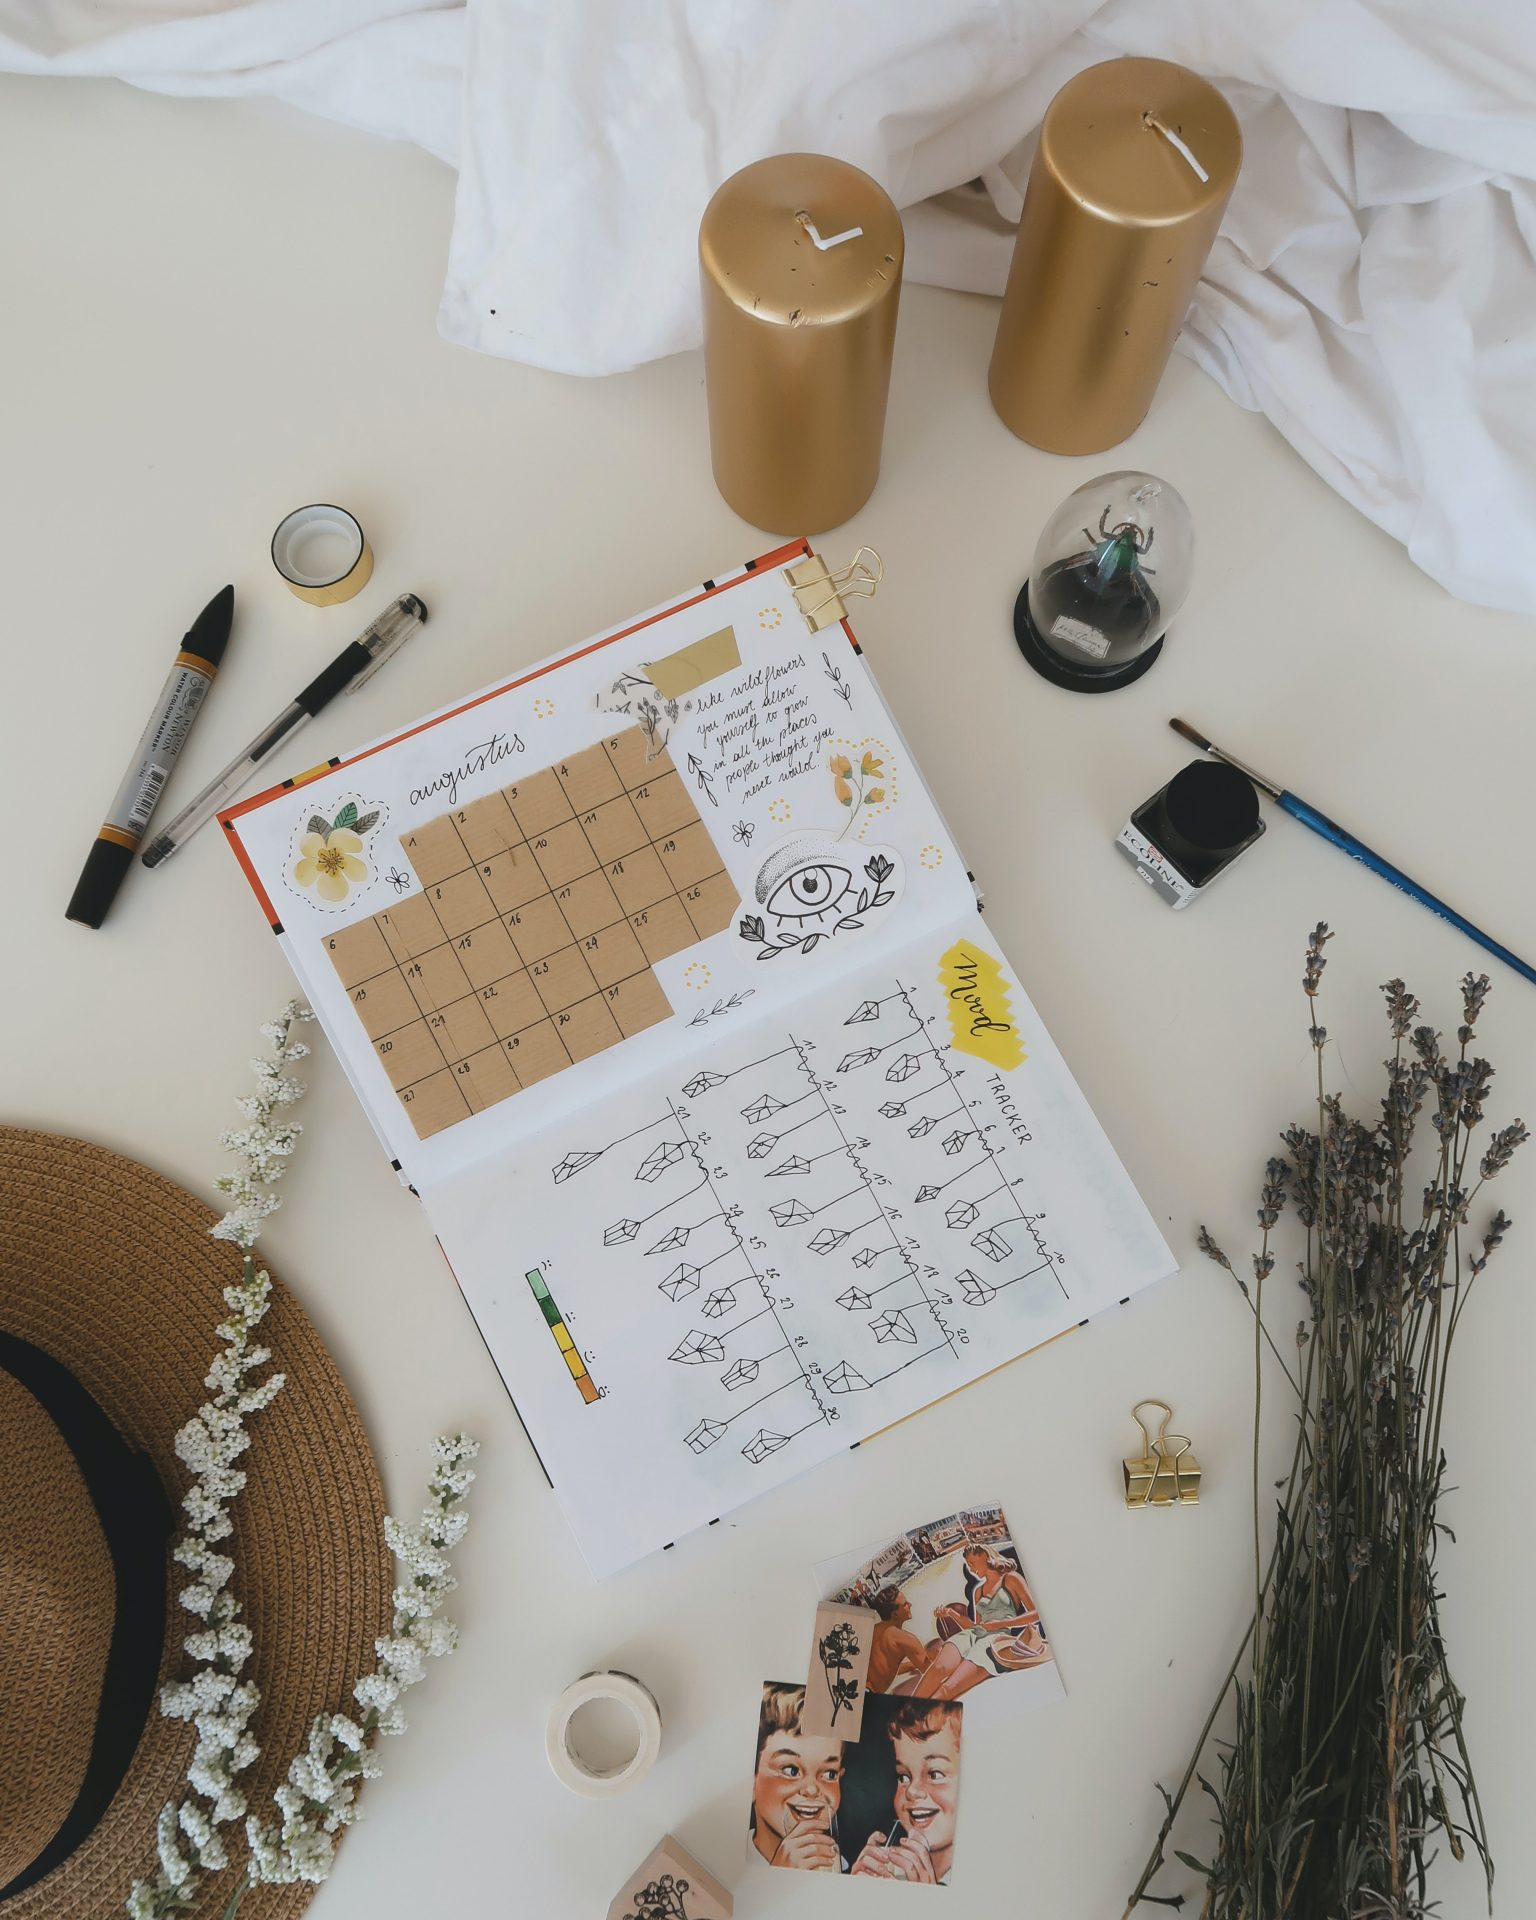 Successful-people-Morning-Routine-Ideas-Tips-To-Empower-Your-Day-Change-Your-Life-Gratitude-Journaling-productivity